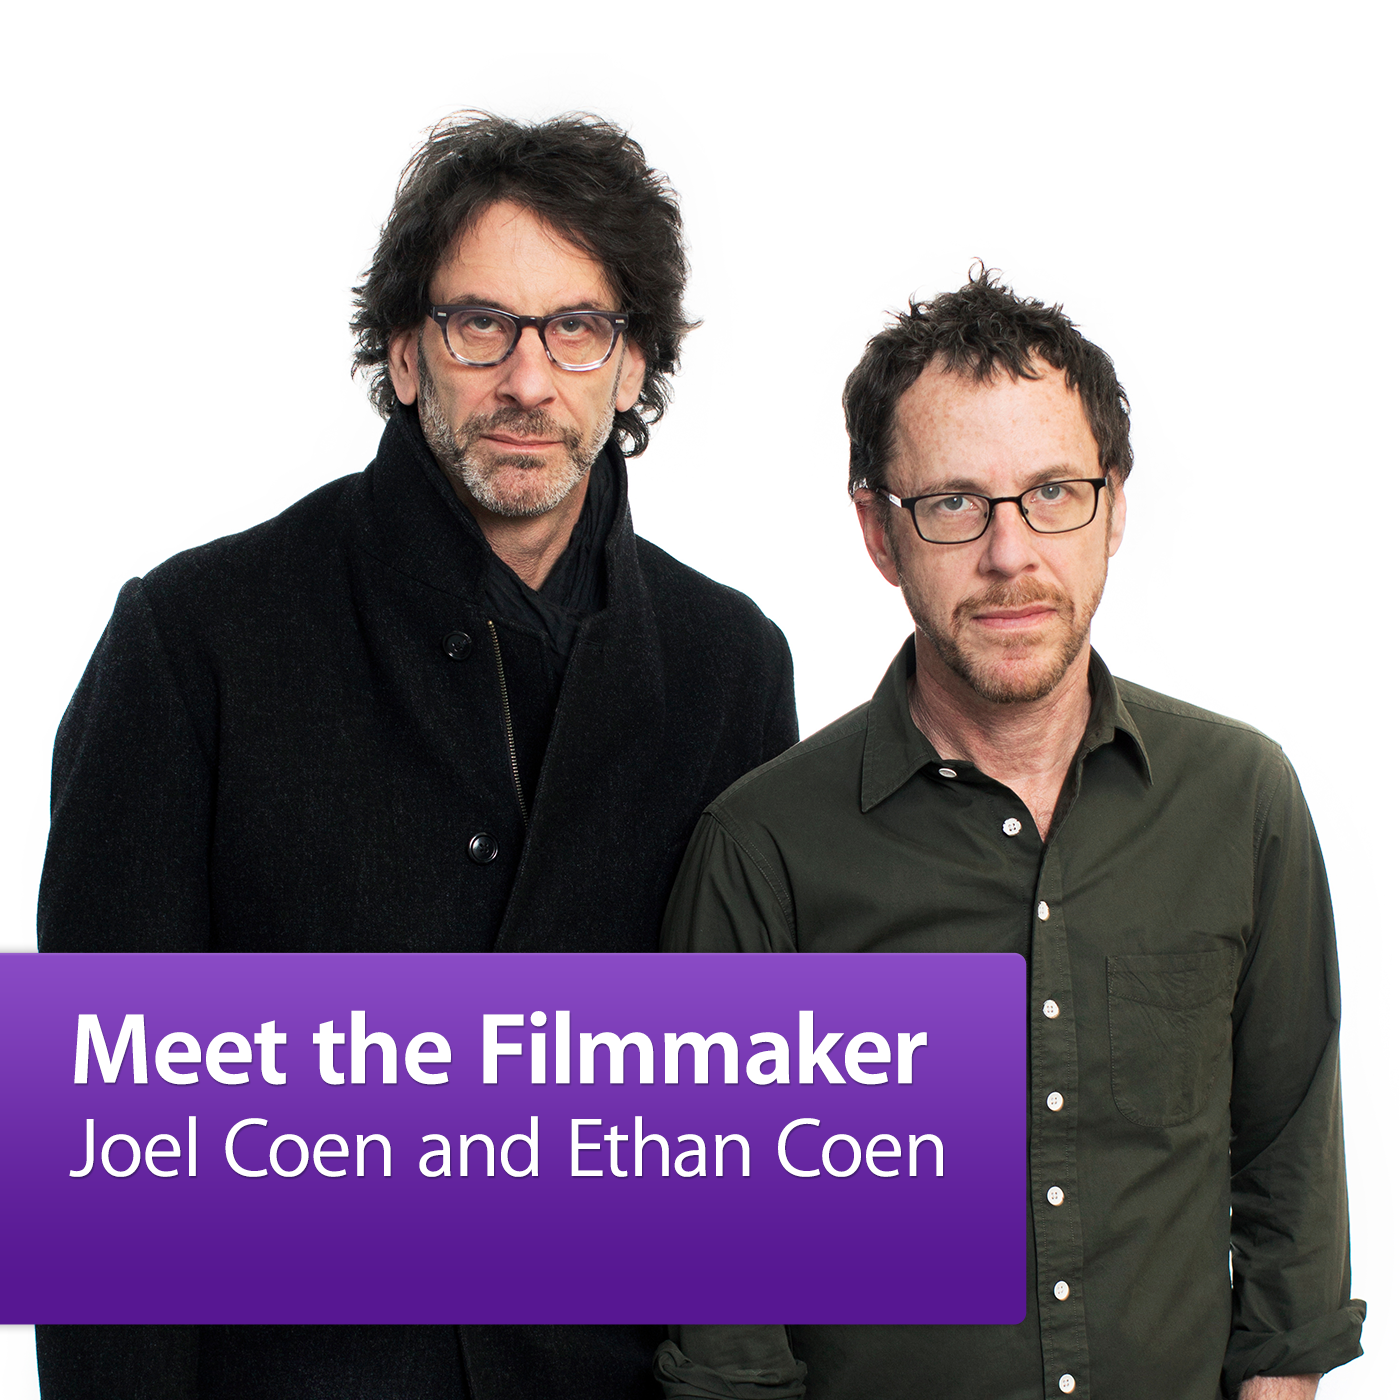 Joel Coen and Ethan Coen: Meet the Filmmaker